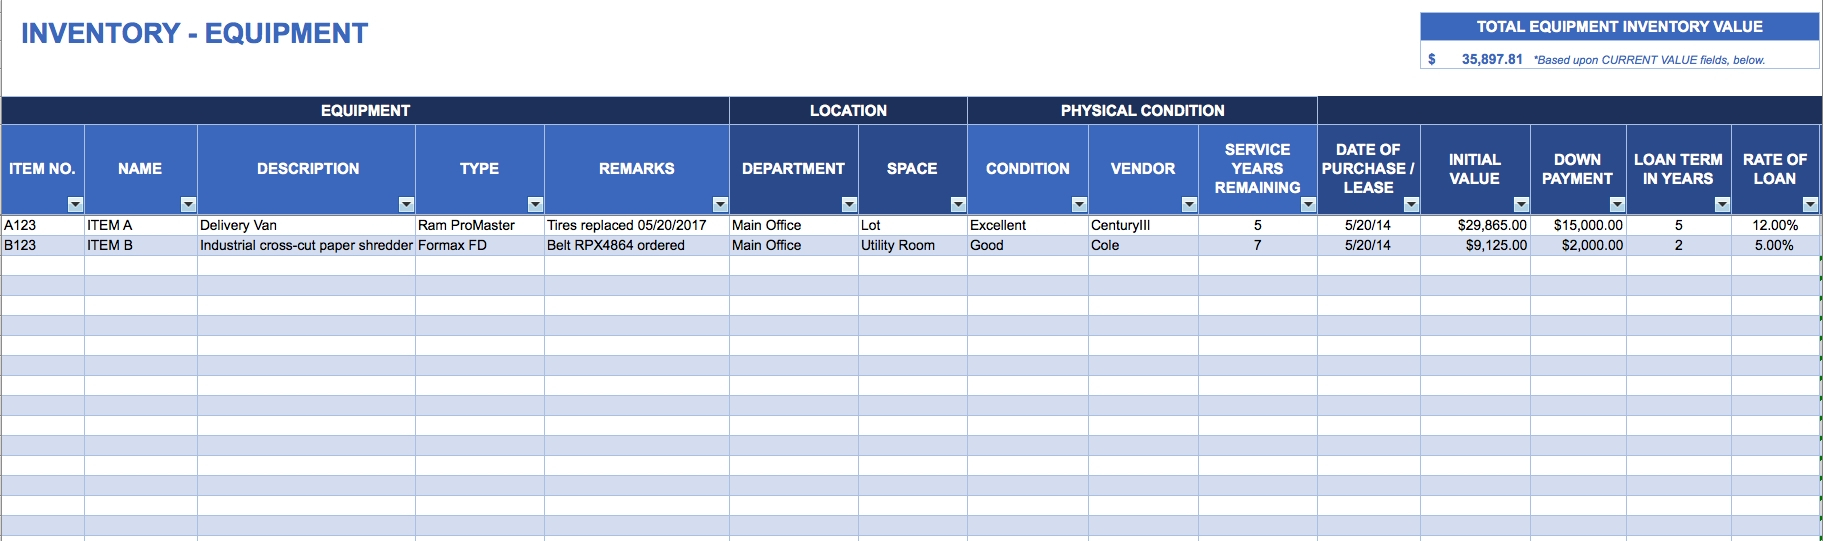 Excel Inventory Tracking Spreadsheet Template Intended For Free Excel Inventory Templates With Consignment Inventory Tracking